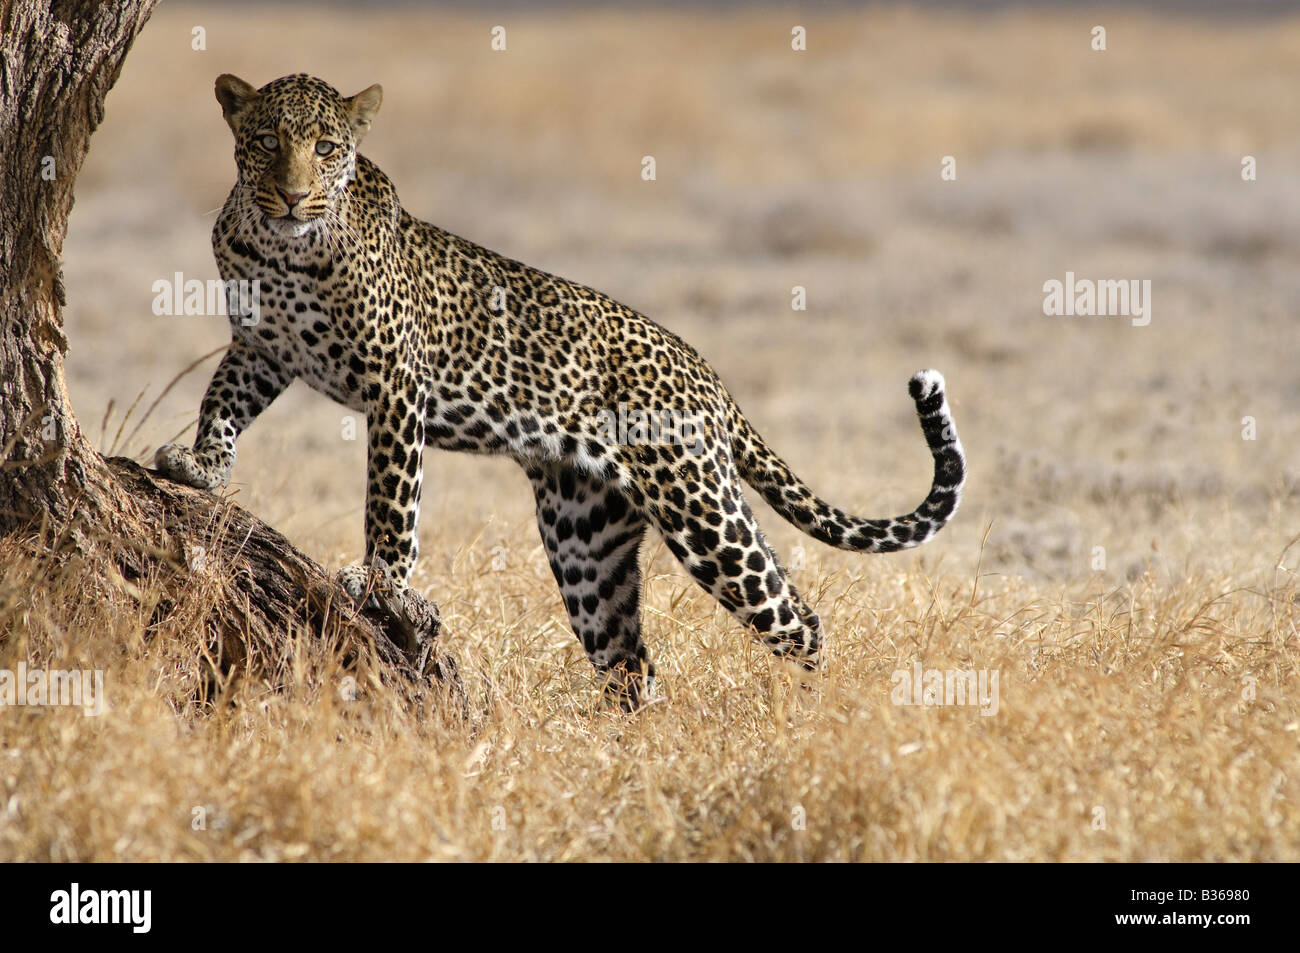 African Leopard, male attempting to climb into a tree (Panthera pardus), Ndutu, Ngorongoro, Tanzania - Stock Image